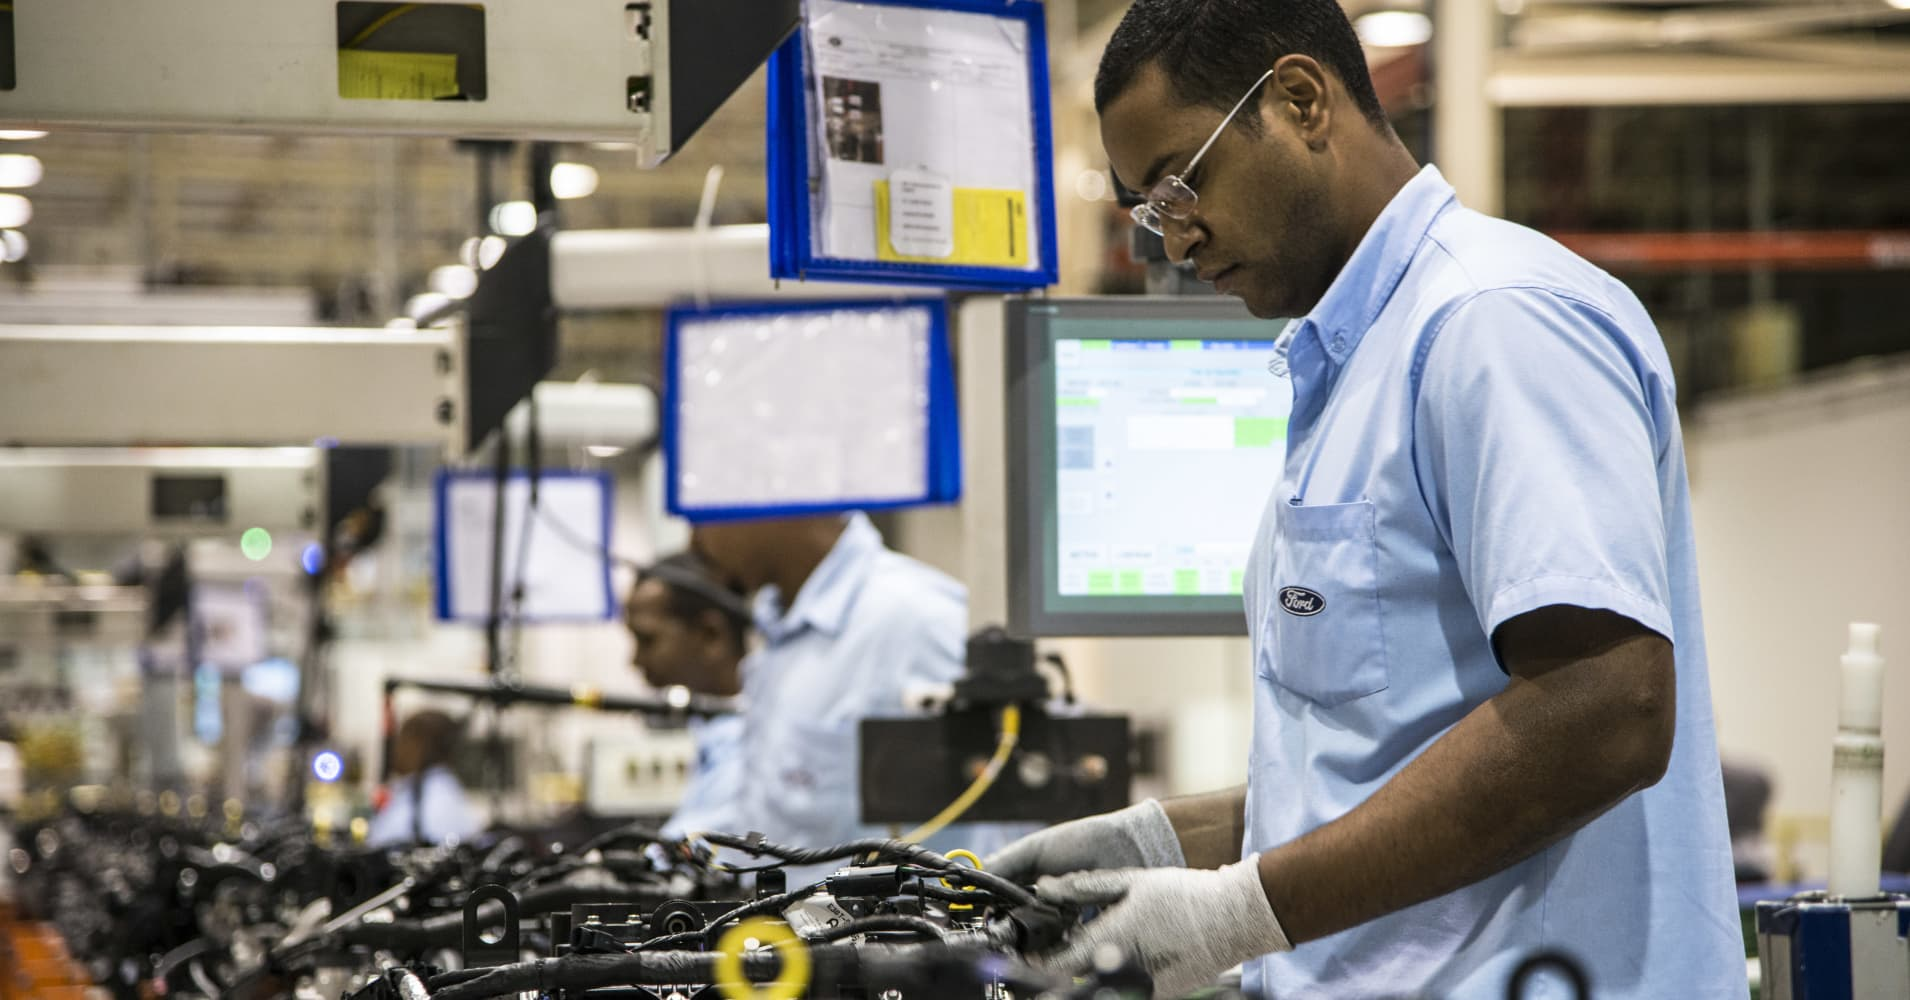 Assembly line of engines for the Ford KA 1.0 3 cylinders at the Ford Engines plant in Camaçari, Brazil.